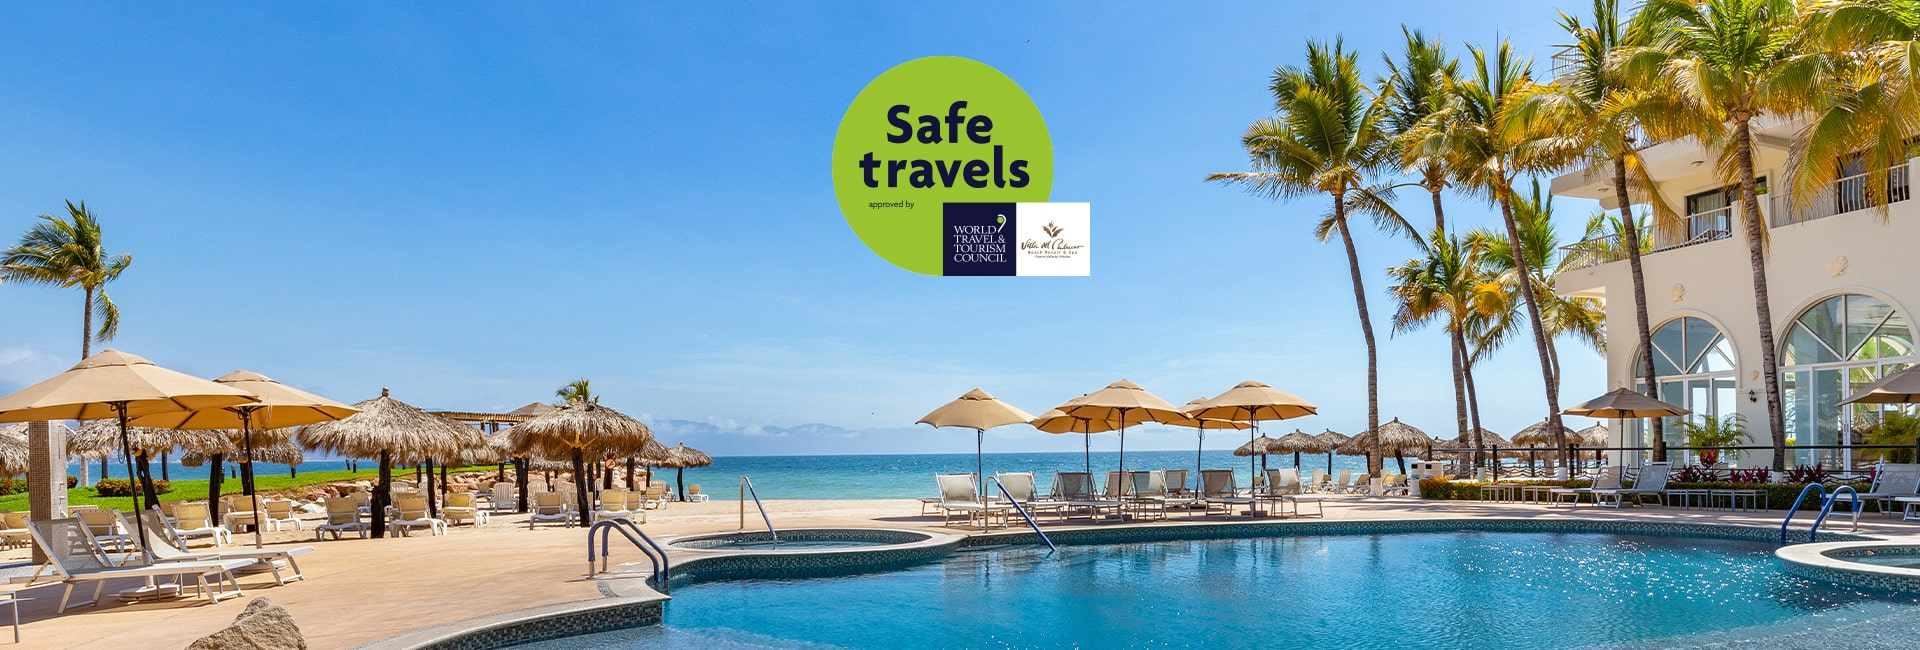 Villa del palmar puerto vallarta receives the safe travels stamp from the wttc